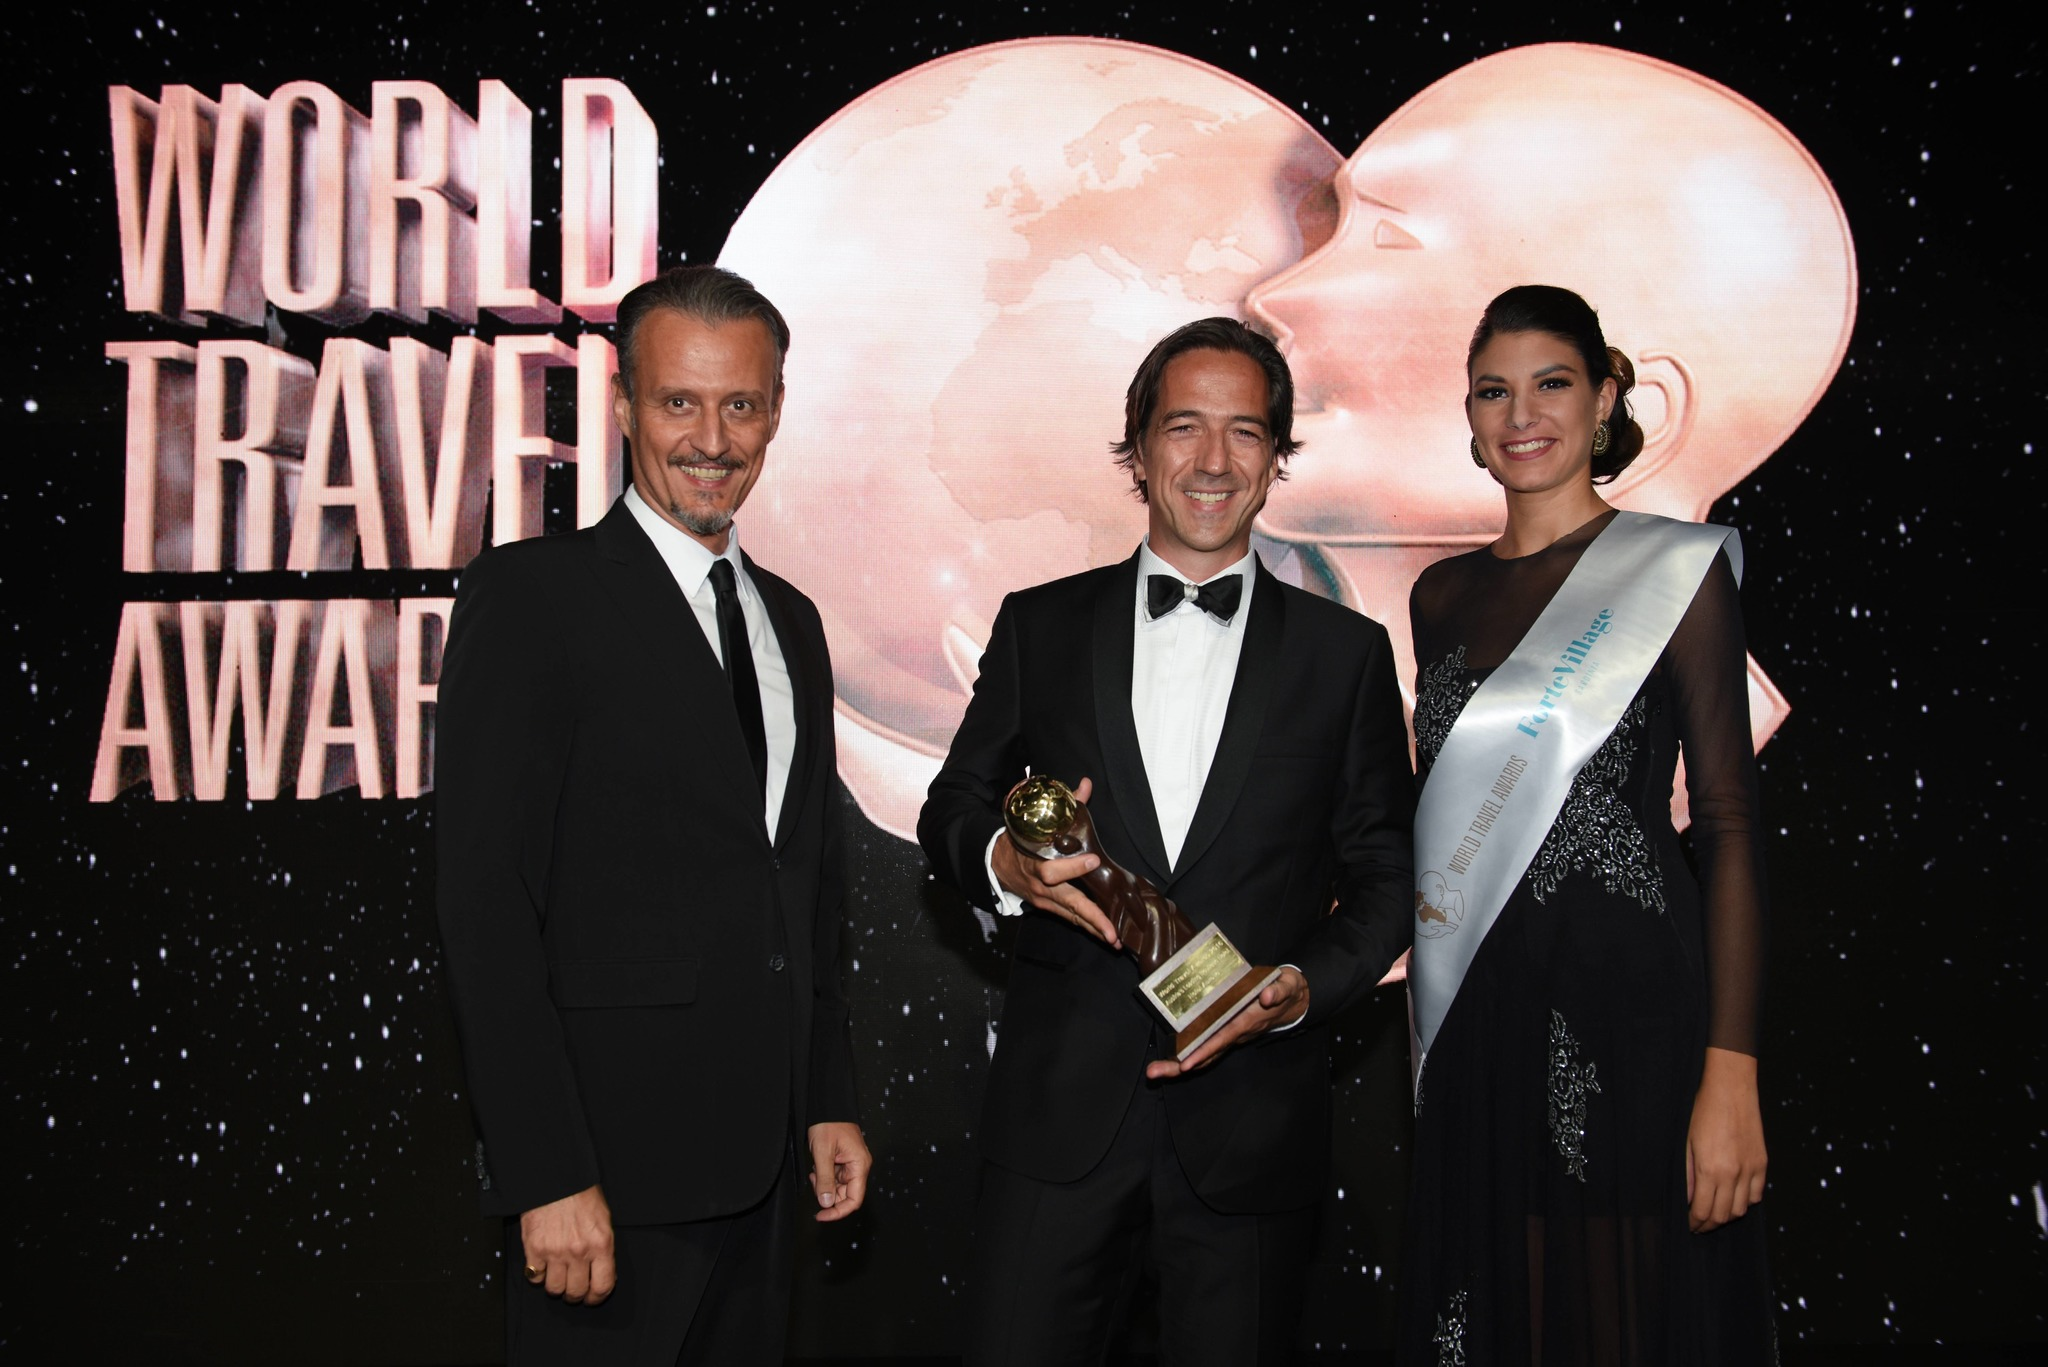 Aurelio lech als austria 39 s leading boutique hotel 2016 for Leading small hotels